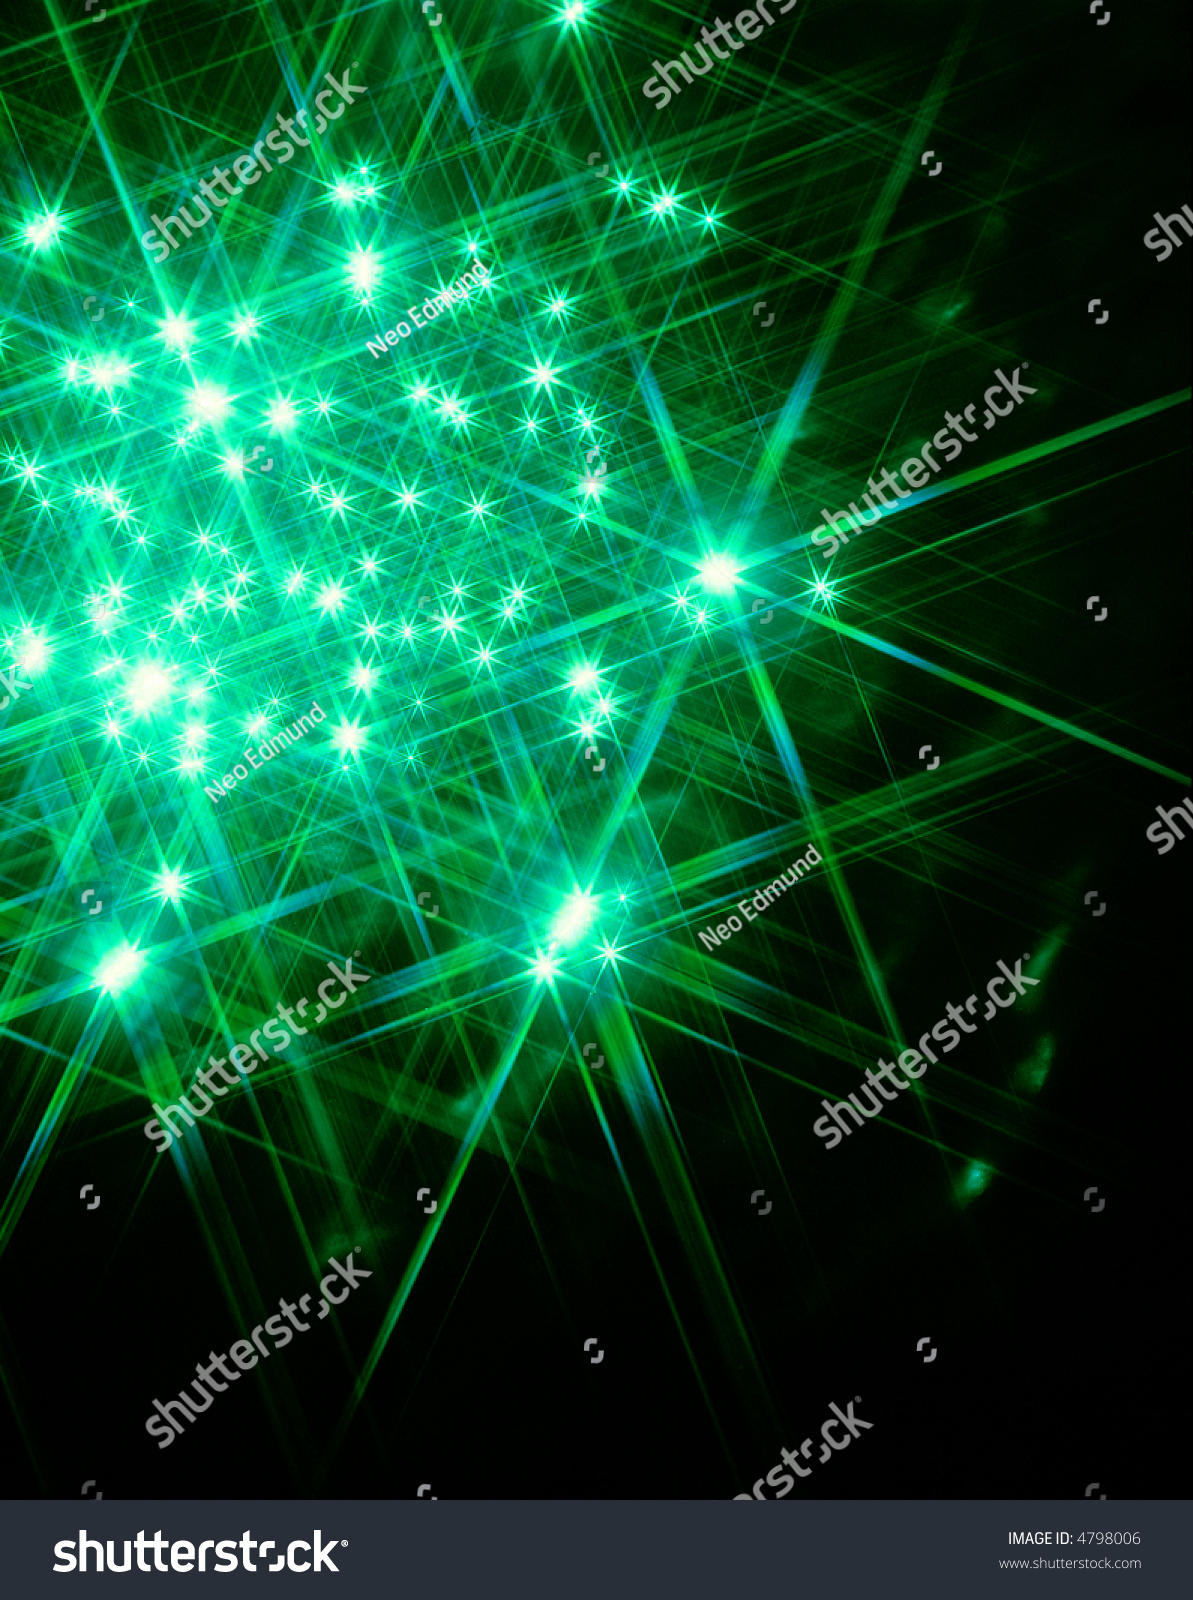 green star light stock illustration 4798006 shutterstock